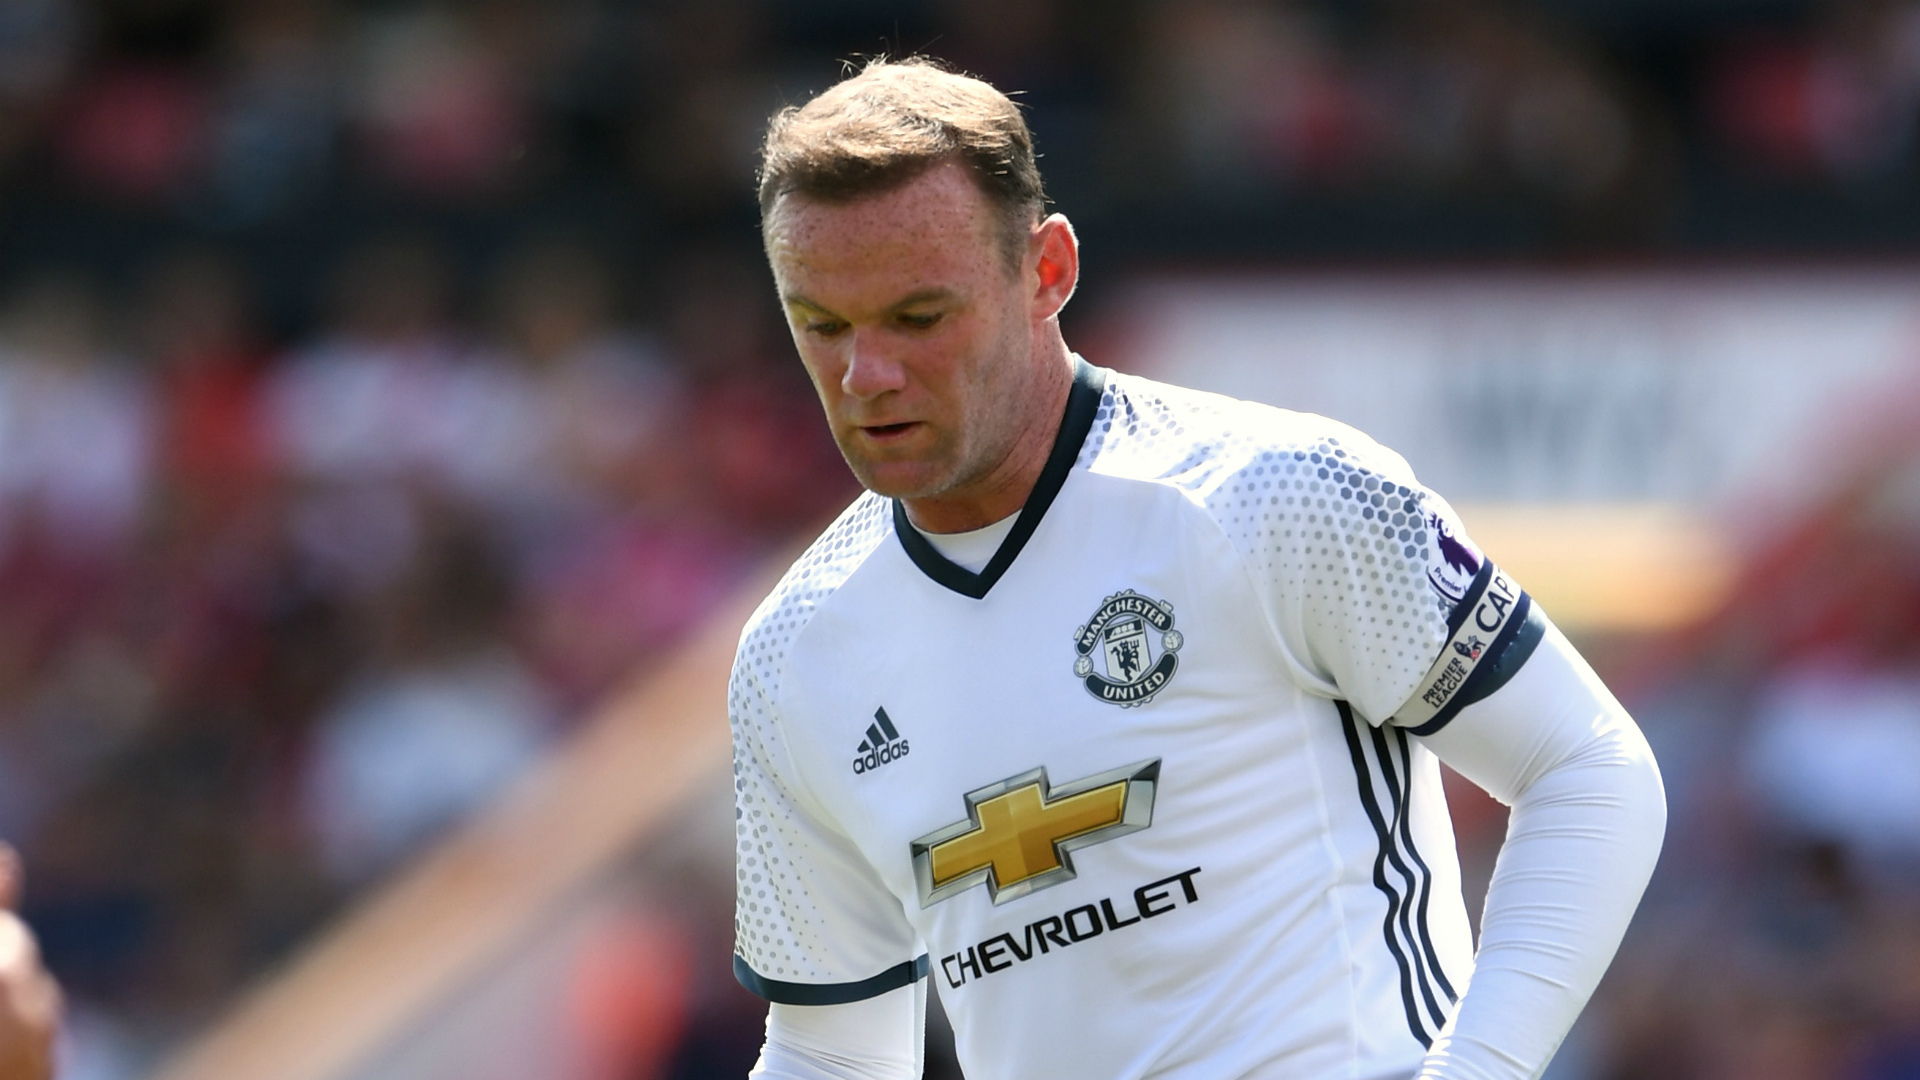 Rooney to retire from England after Cup